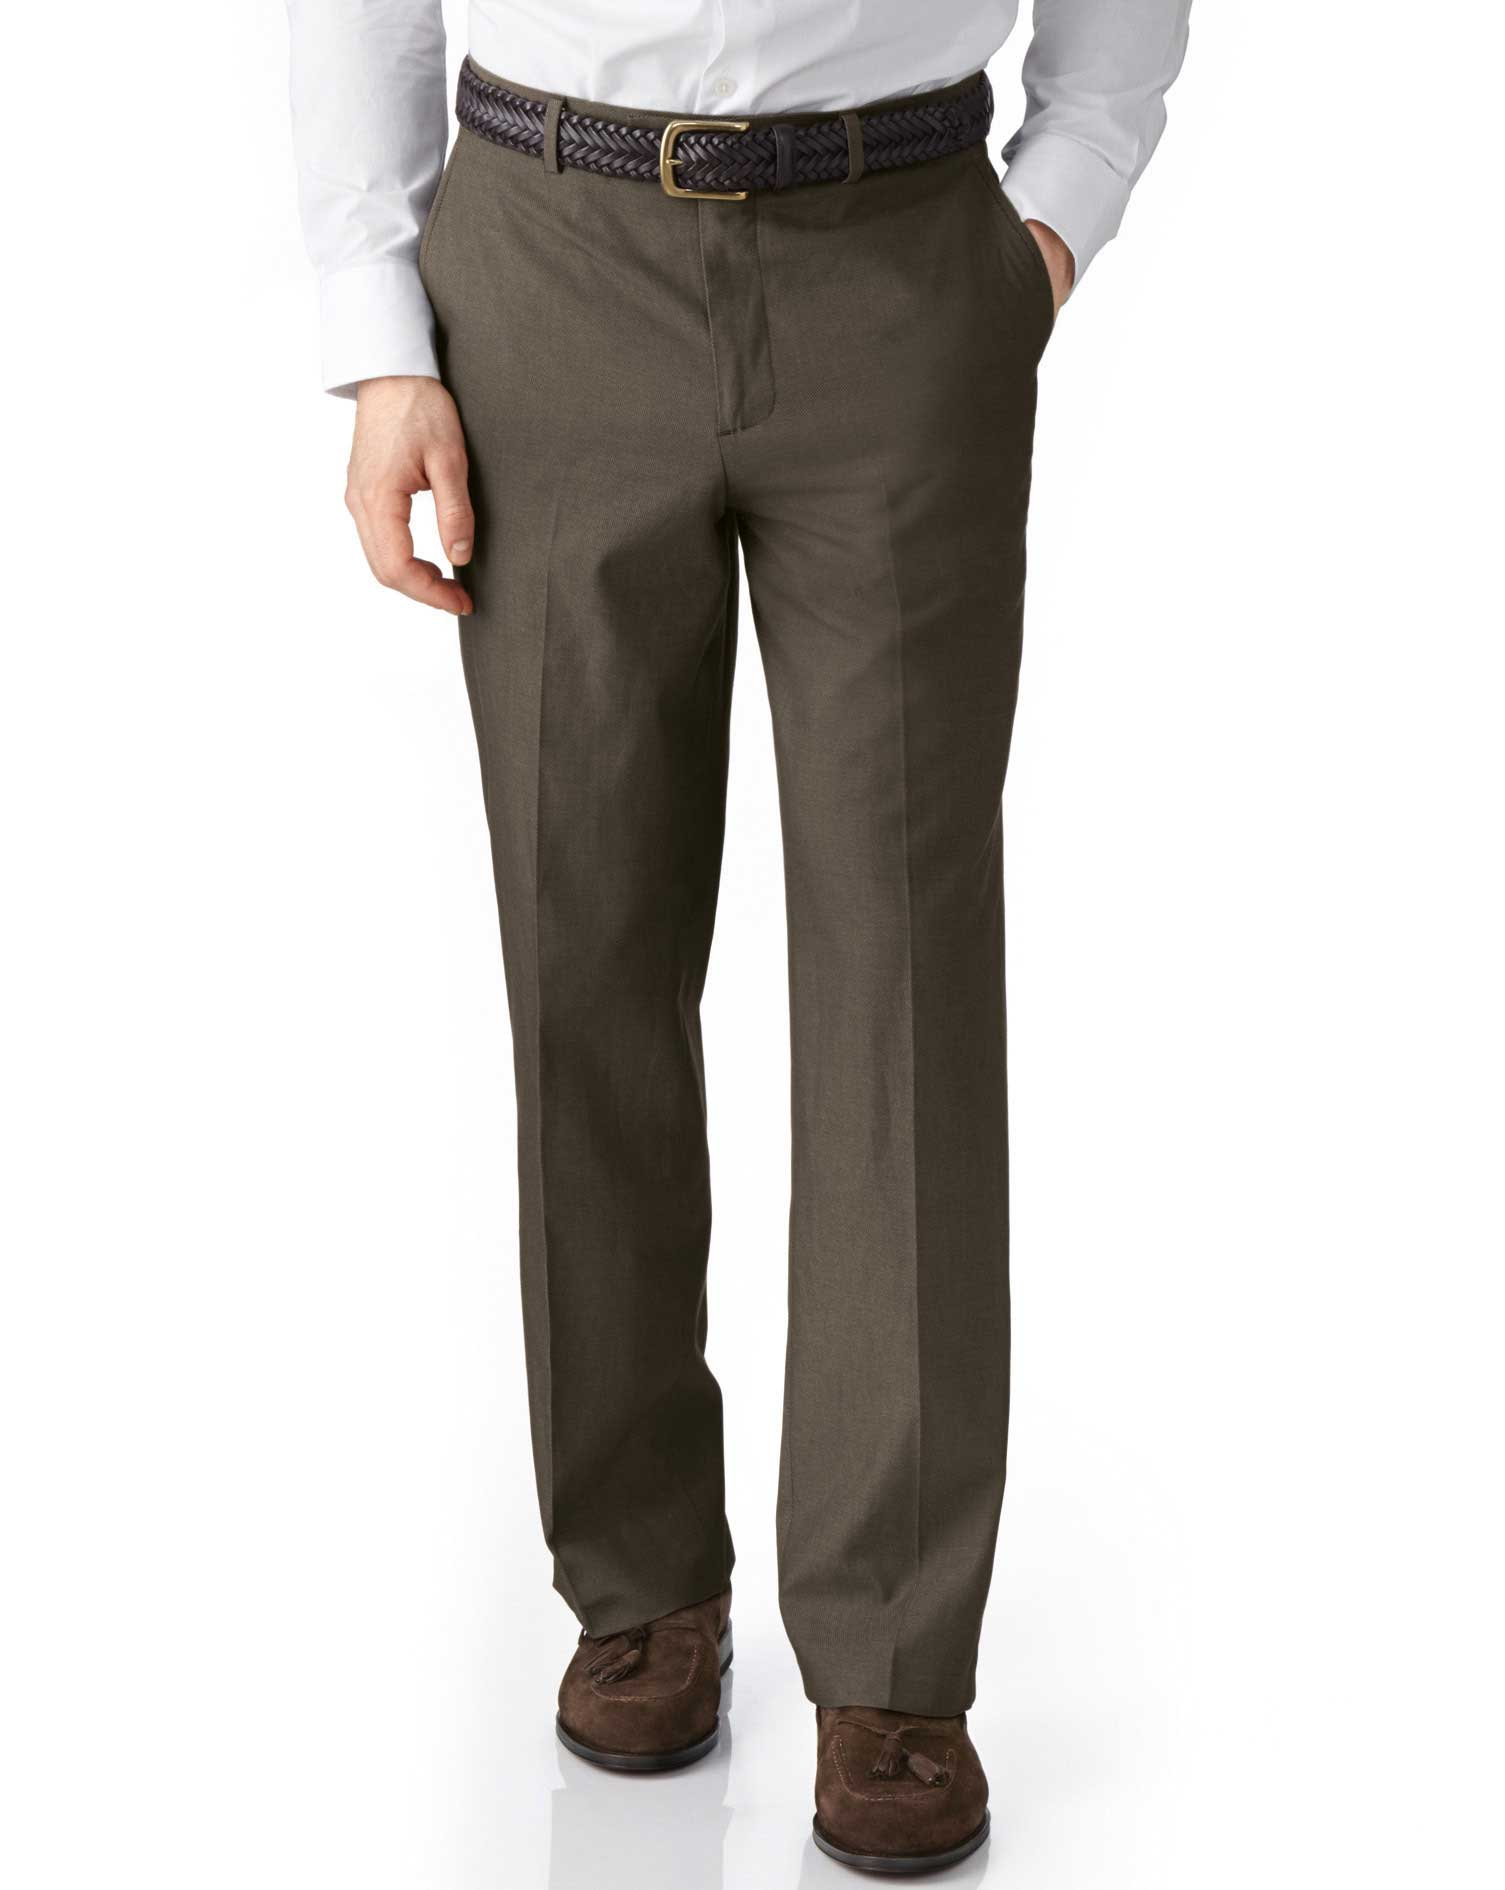 Brown Classic Fit Stretch Cavalry Twill Cotton Chino Trousers Size W32 L30 by Charles Tyrwhitt